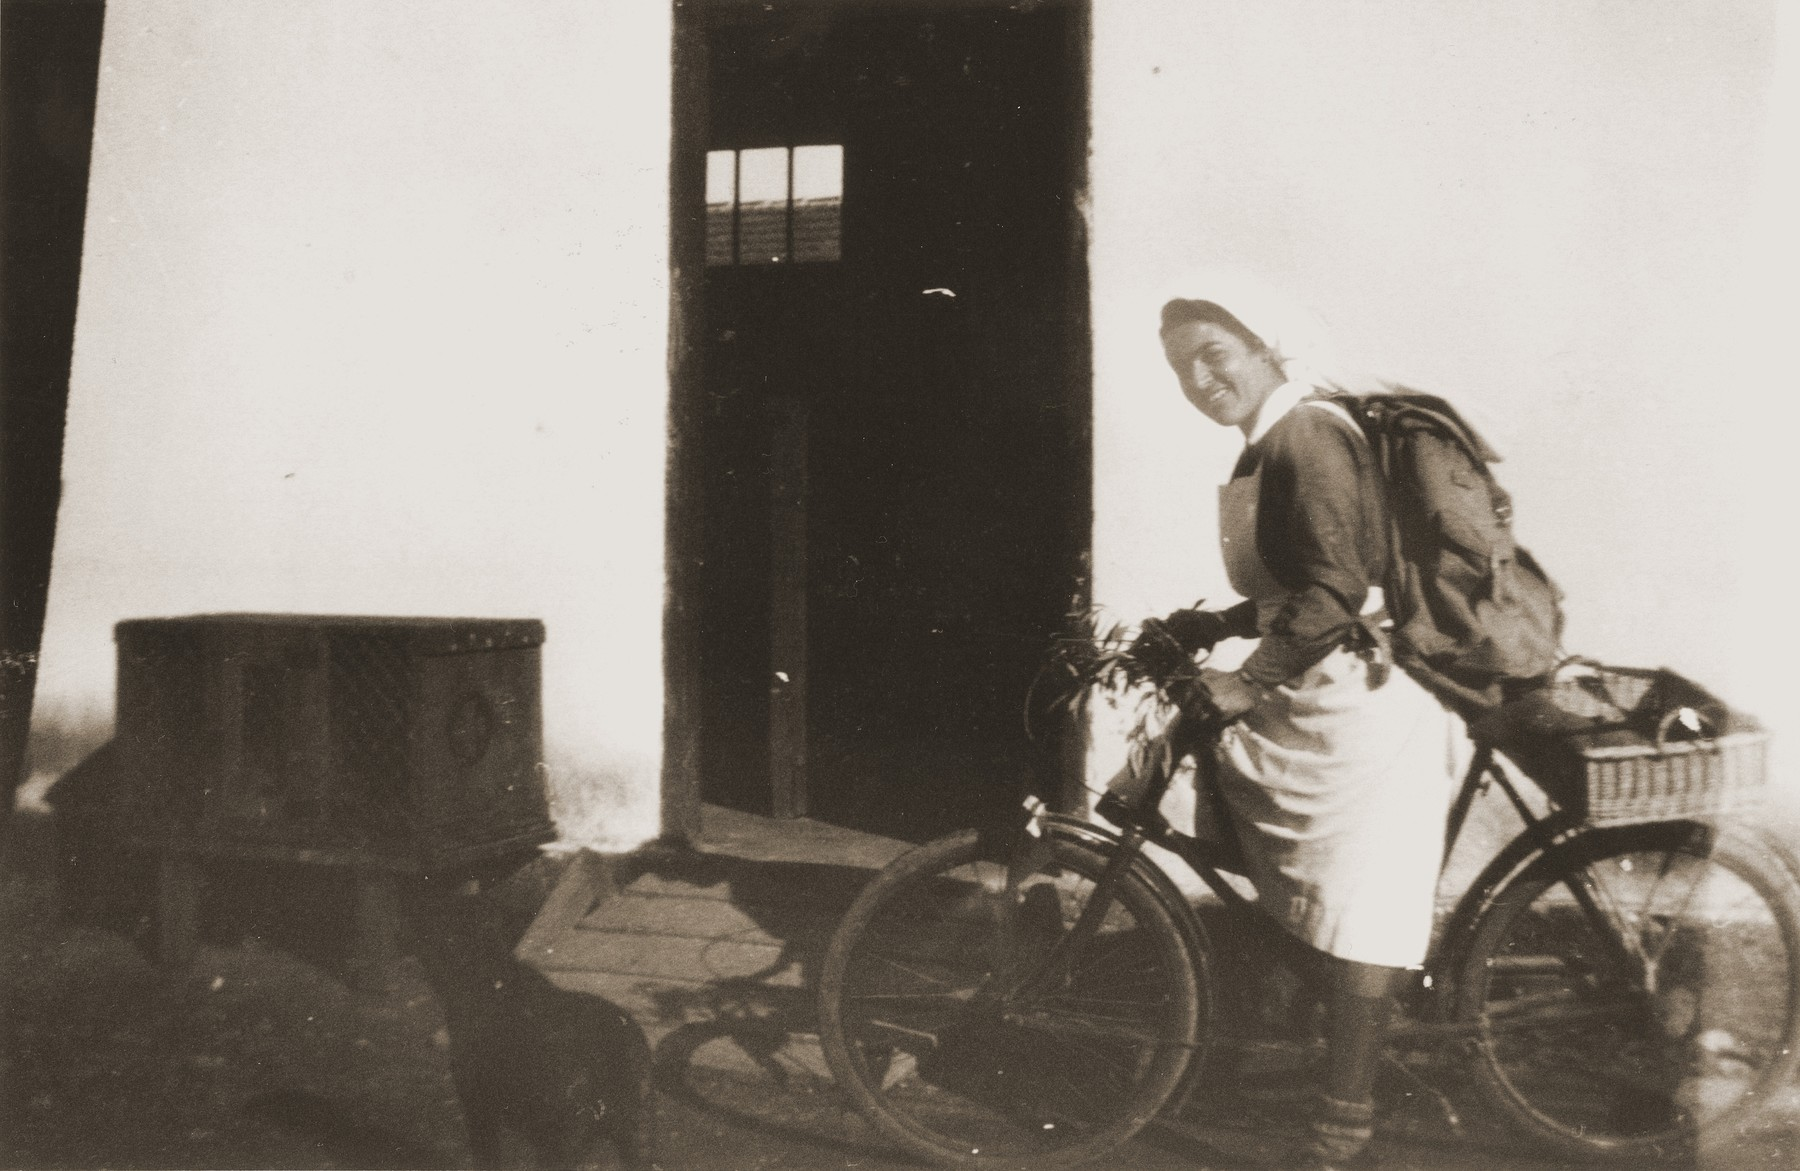 Secours Suisse relief worker Friedel Reiter, rides a bicycle in the Rivesaltes internment camp.